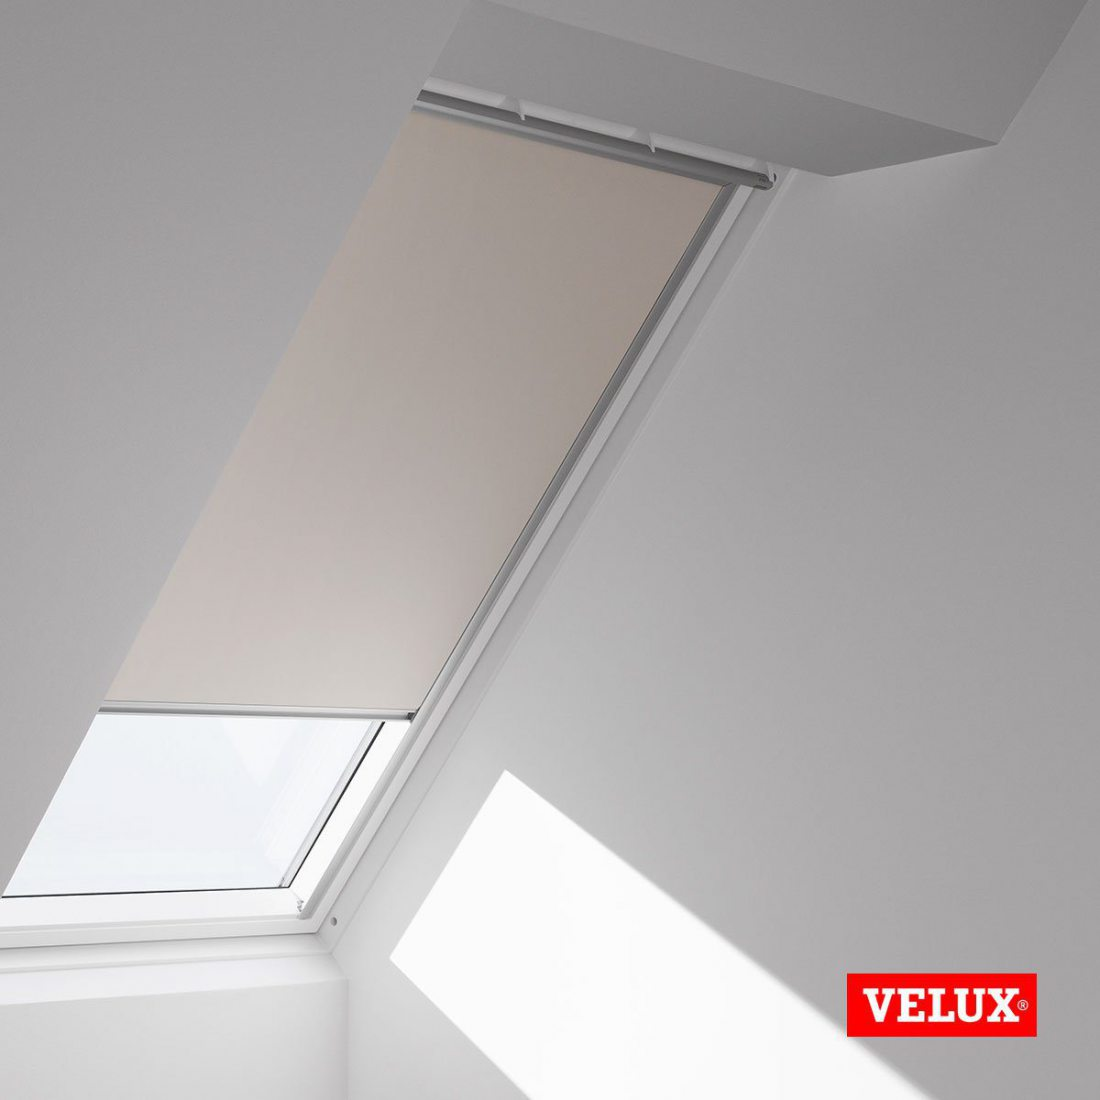 velux original store occultant pour fen tres de toit c02. Black Bedroom Furniture Sets. Home Design Ideas